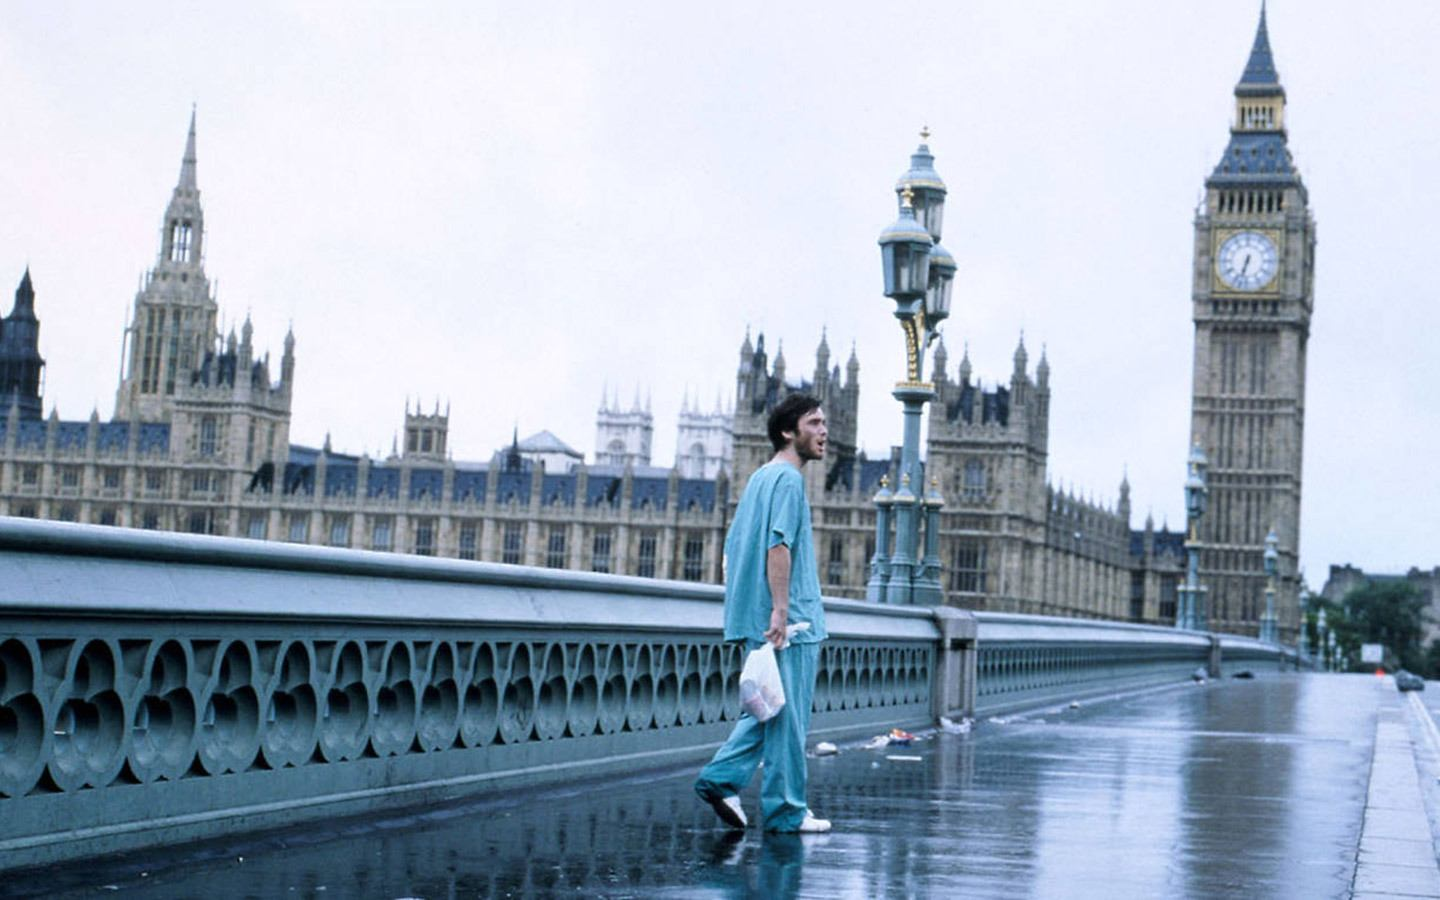 Westminster Bridge in the film 28 Days Later